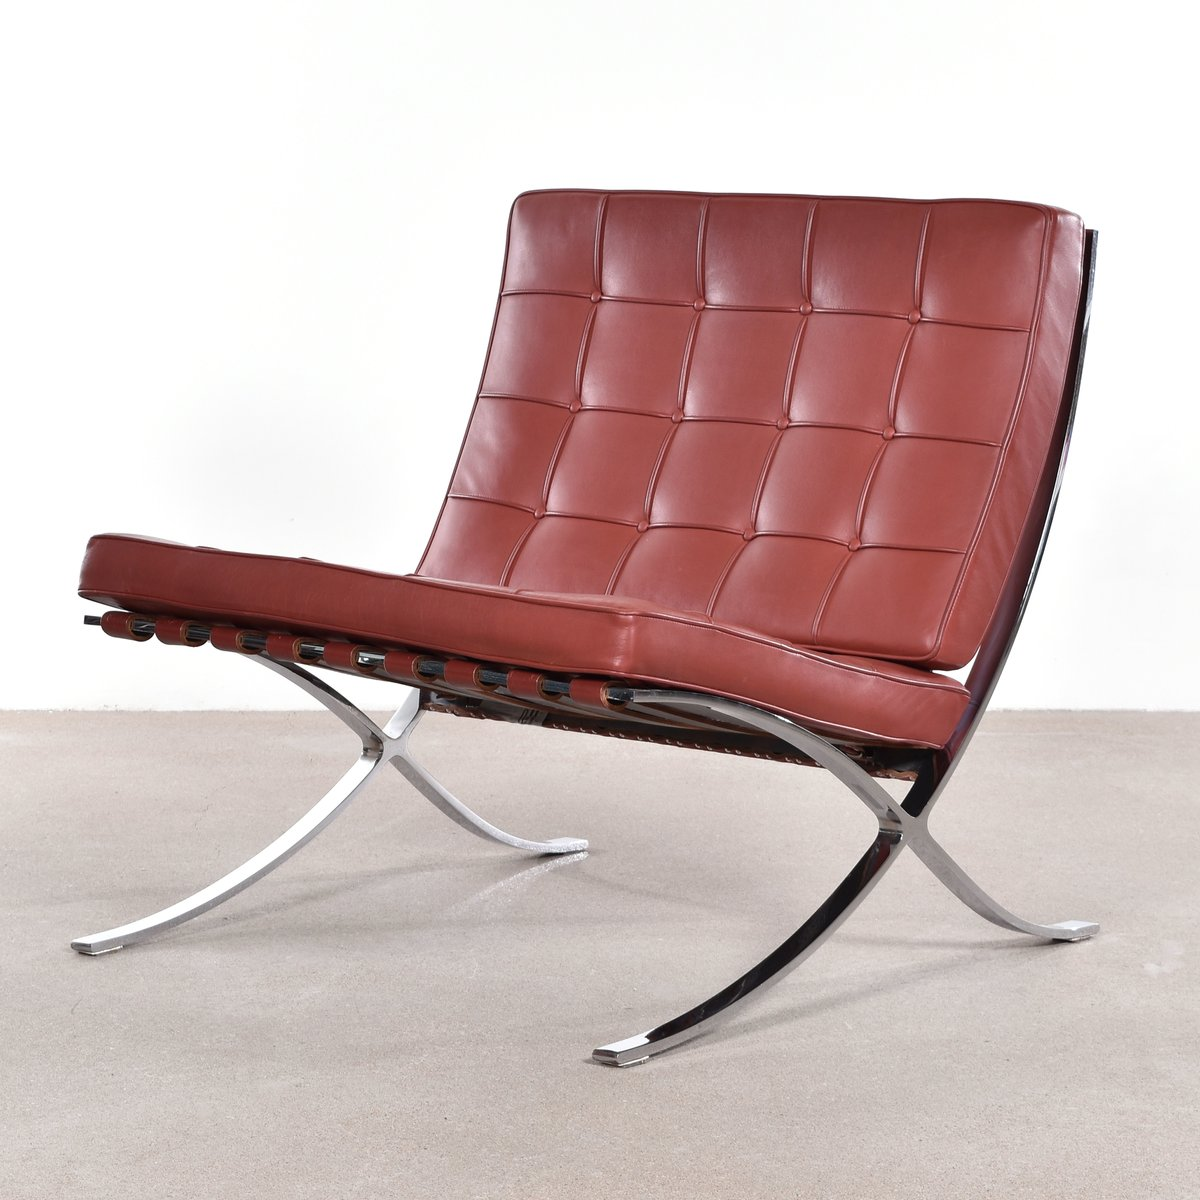 barcelona chair by ludwig mies van der rohe for knoll for sale at pamono. Black Bedroom Furniture Sets. Home Design Ideas